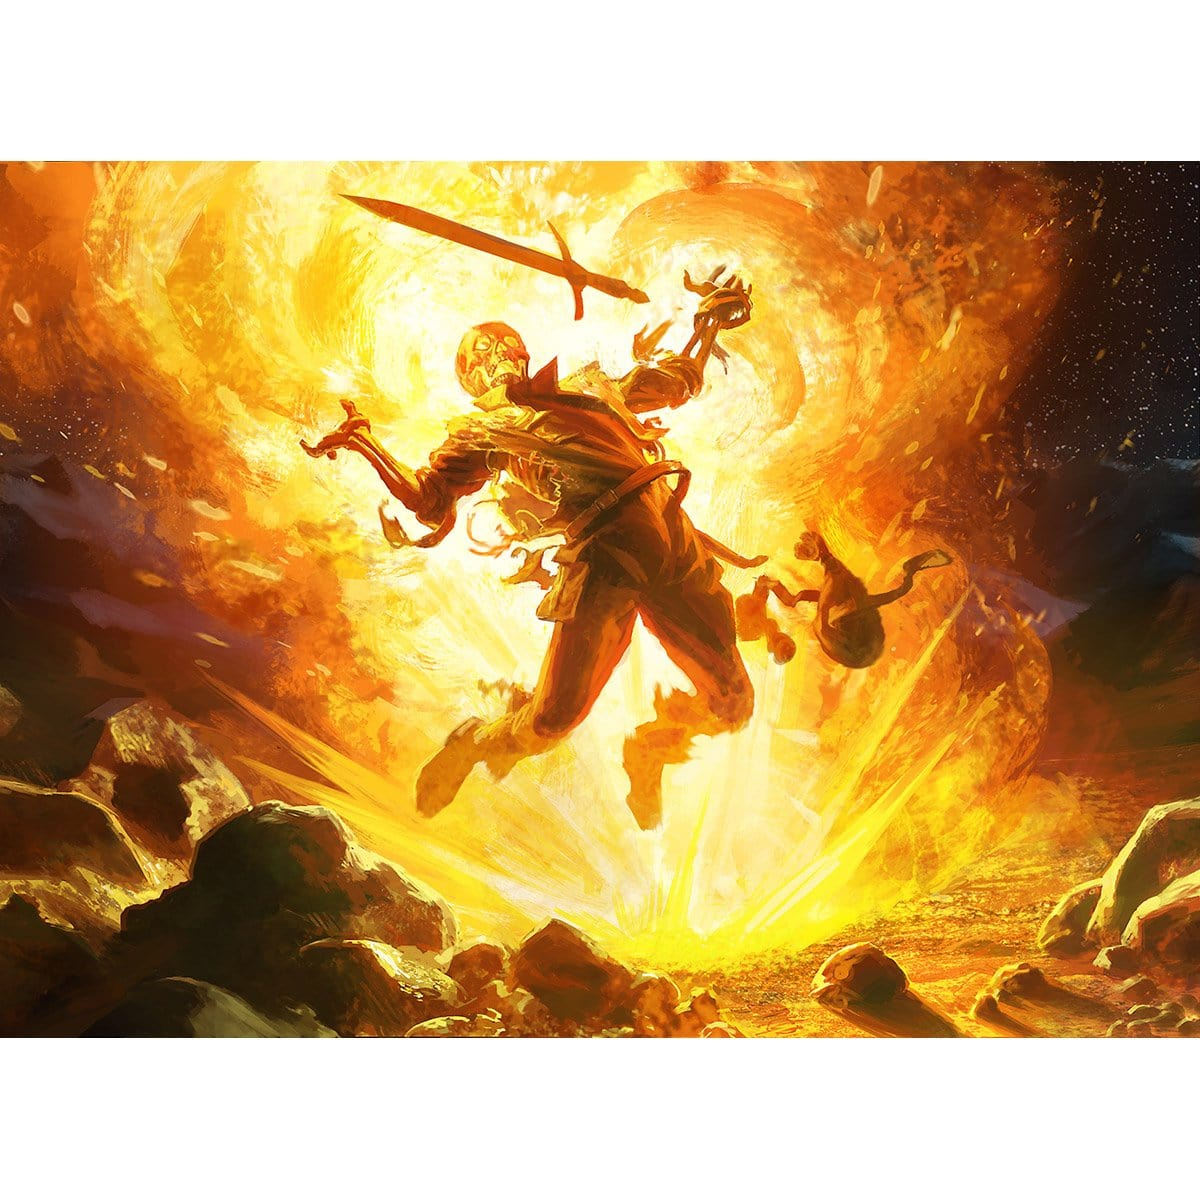 Fireblast Print - Print - Original Magic Art - Accessories for Magic the Gathering and other card games